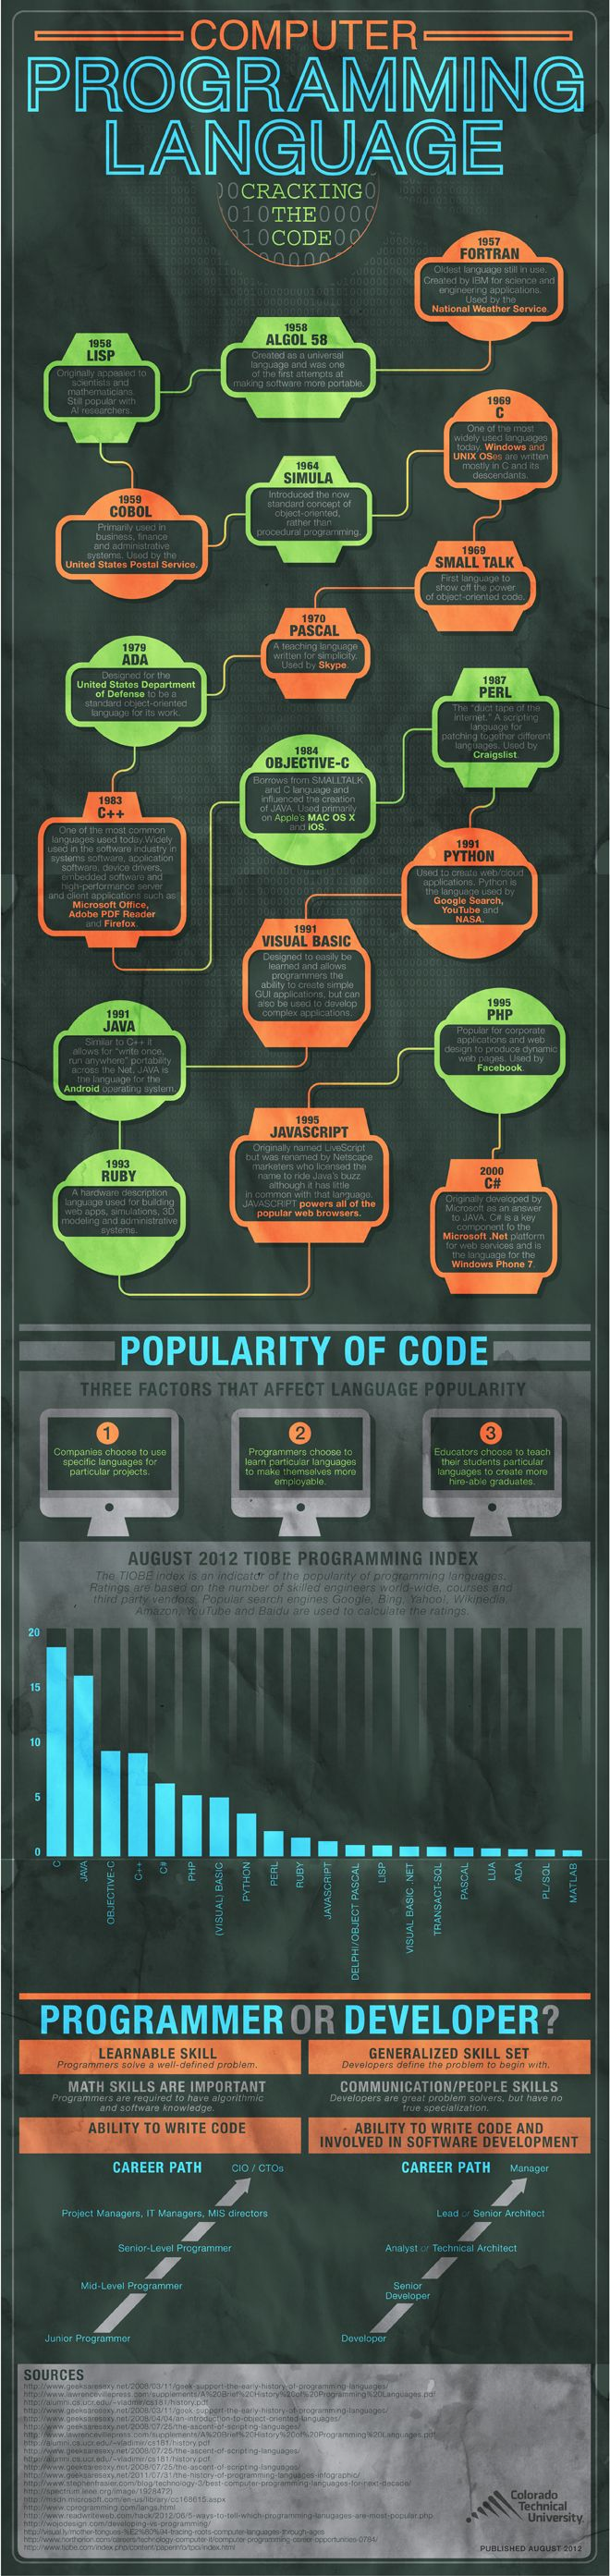 If you're interested in an IT degree and career, coding can be pretty intimidating. From understanding common programming languages to deciphering programming from developing, learning to code is necessary in today's IT industry. The ability to implement a variety of programming languages can help you decide which coding career path is correct for you. Click here to learn more.